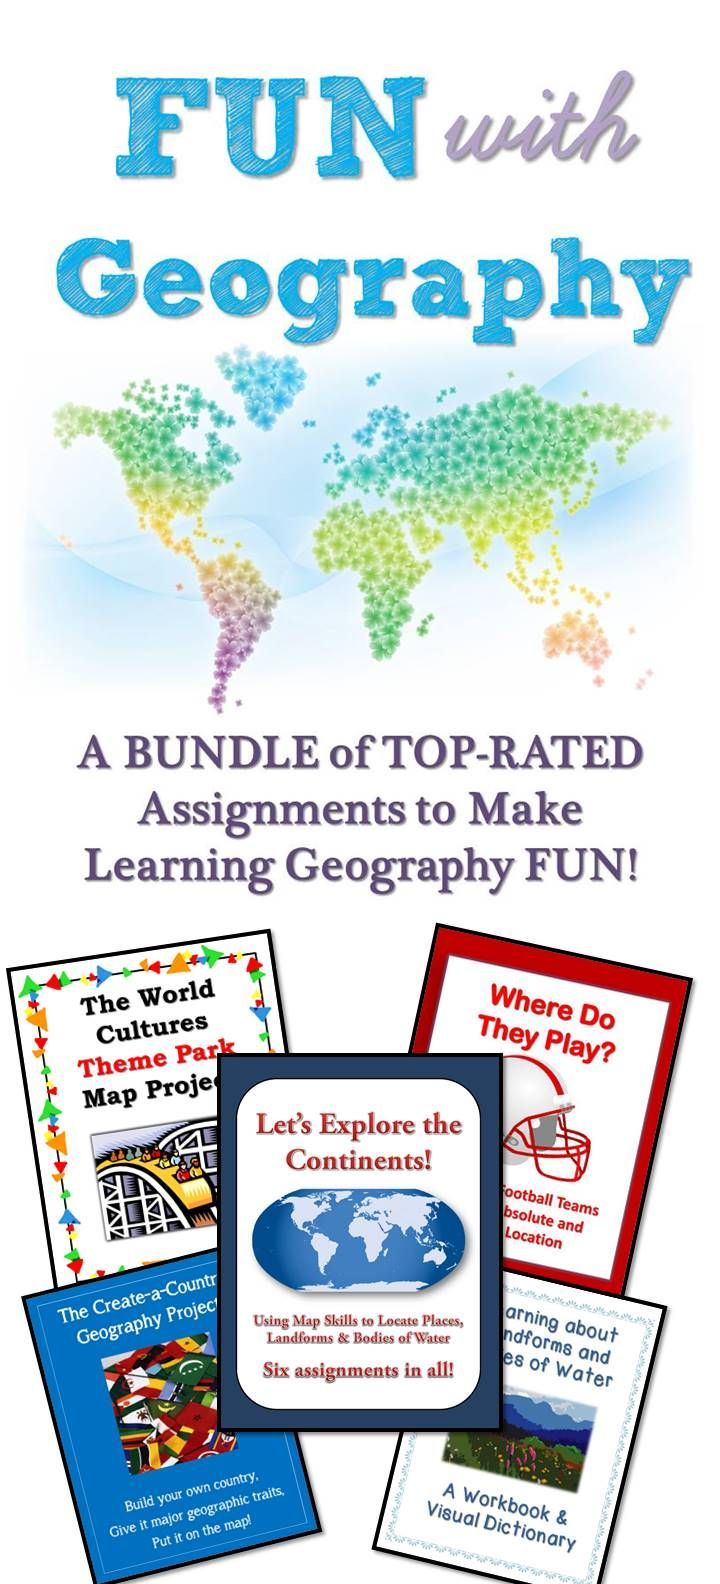 Geography Study Guide Flashcards | Quizlet